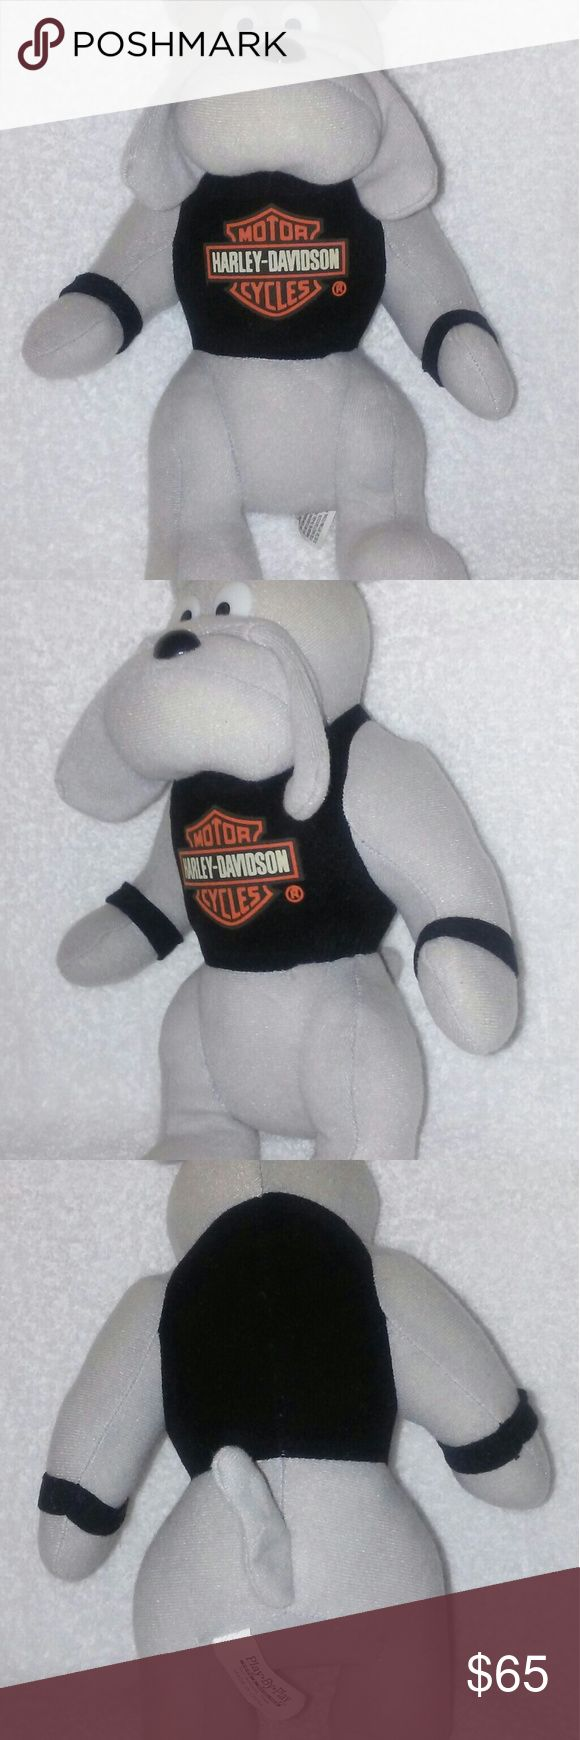 "Vintage Play by Play Harley-Davidson BullDog Plush You are viewing 1 Pre- Owned in Great Condition Vintage Harley Davison Plush Bulldog it stands 11 inches by 7 inches wide by 5 inches thick. It was made in China in 1993 that would make this Plush Toy 24 years Old and sold by play by play Toys & Novelties in San Antonio Texas, if by chance this might not be in your price range we are excepting offers but we will only take ""Serious Buyers Only play by Play Other"